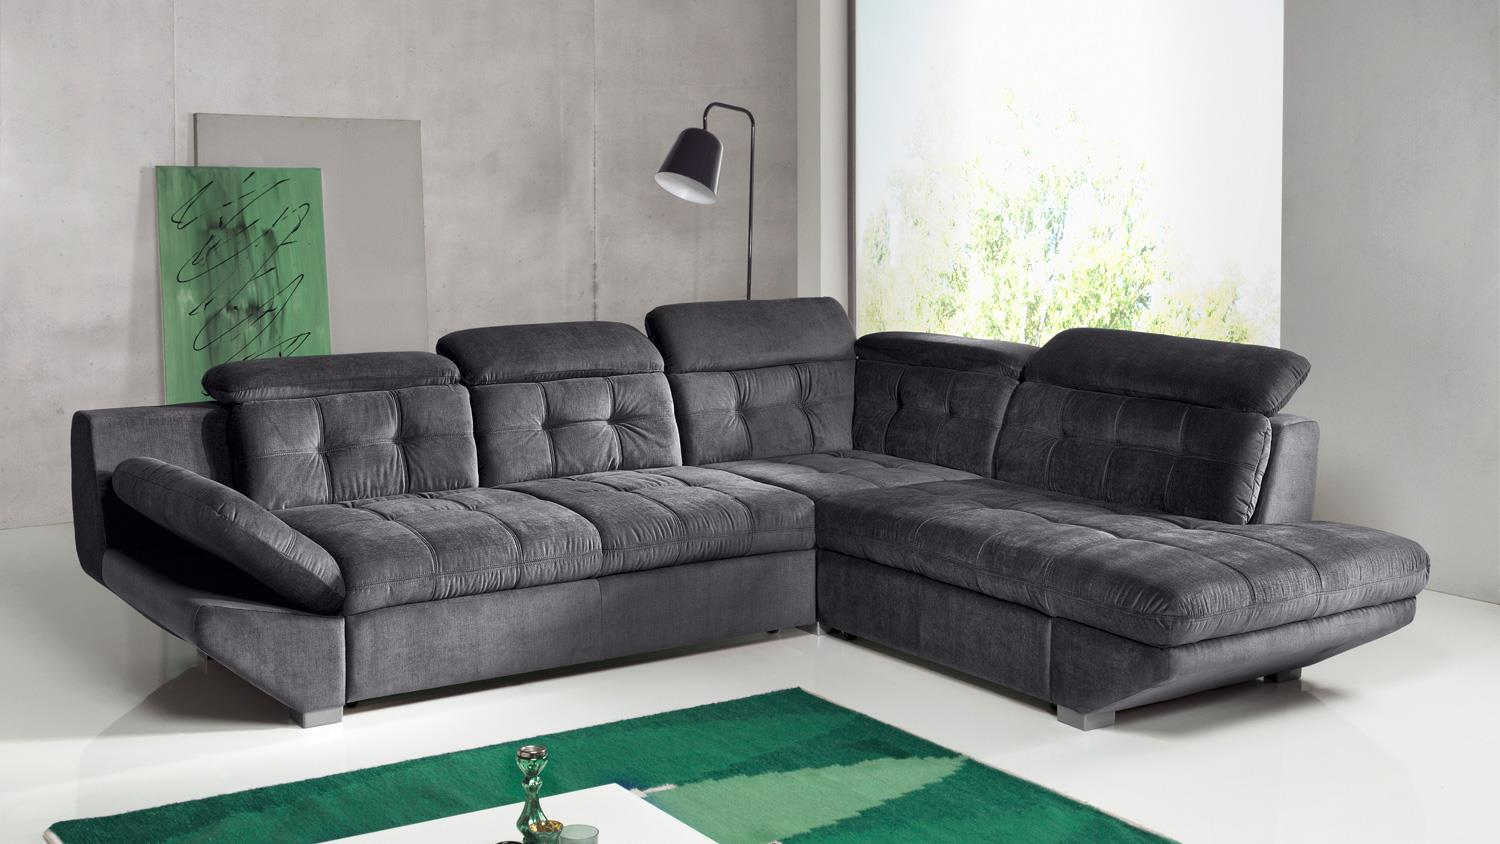 mit sitztiefe finest best beautiful sofa mit sitztiefe. Black Bedroom Furniture Sets. Home Design Ideas